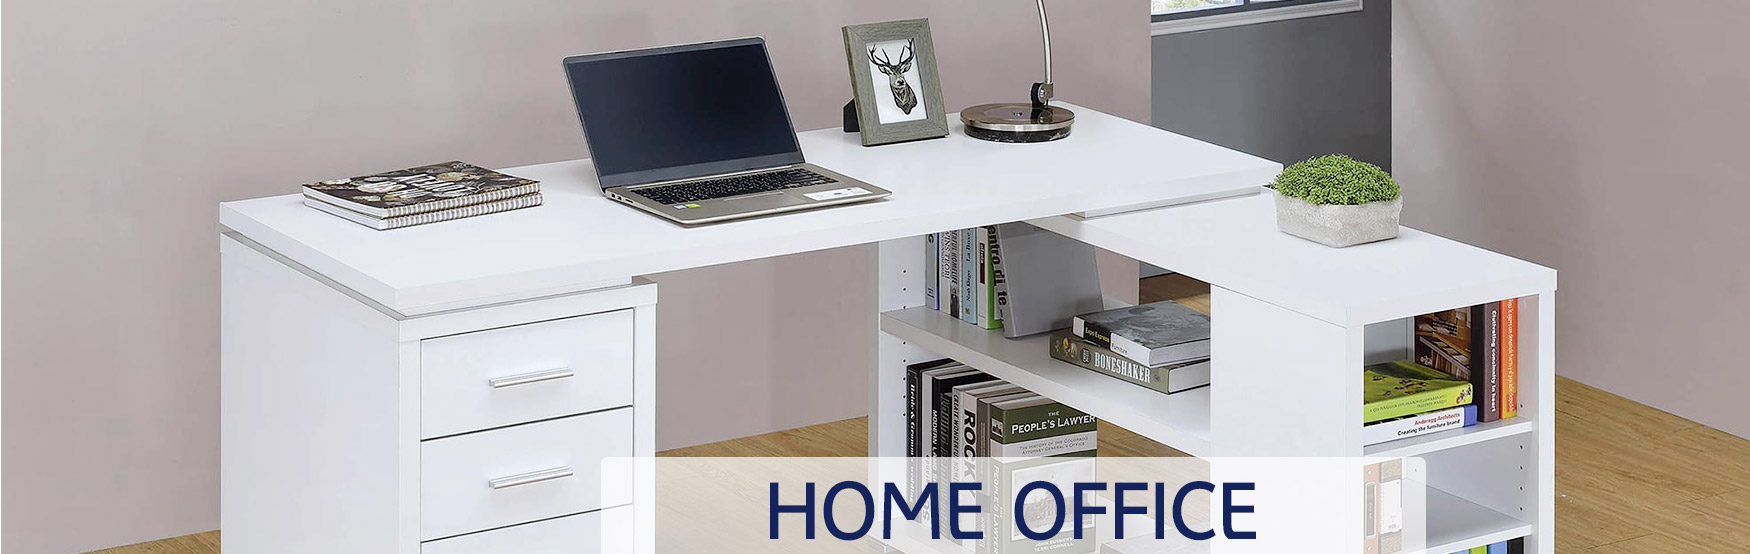 Home Office Furniture Banner